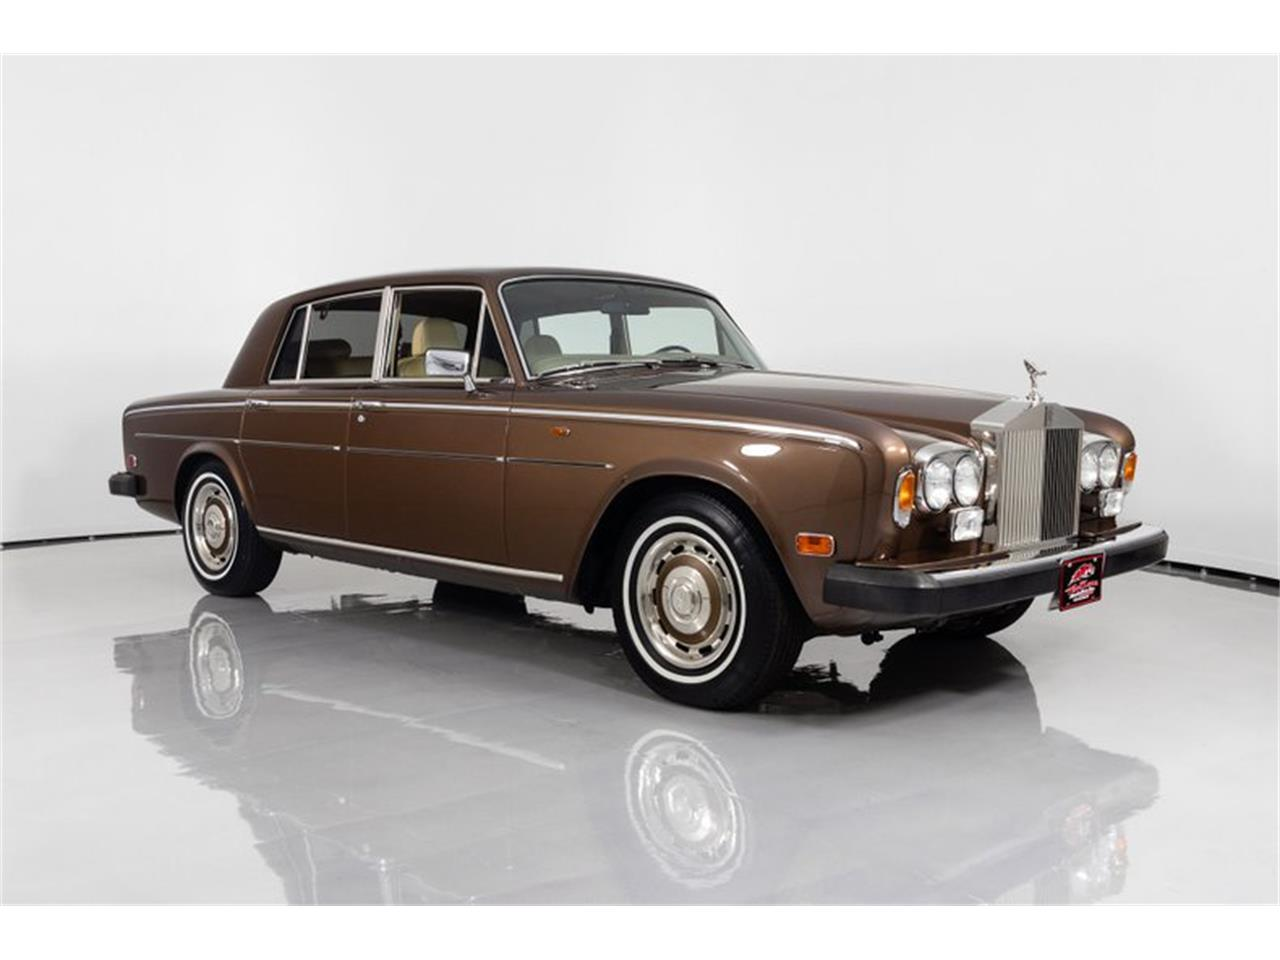 Large Picture of 1981 Rolls-Royce Silver Shadow II located in St. Charles Missouri - $32,995.00 - QZ5G